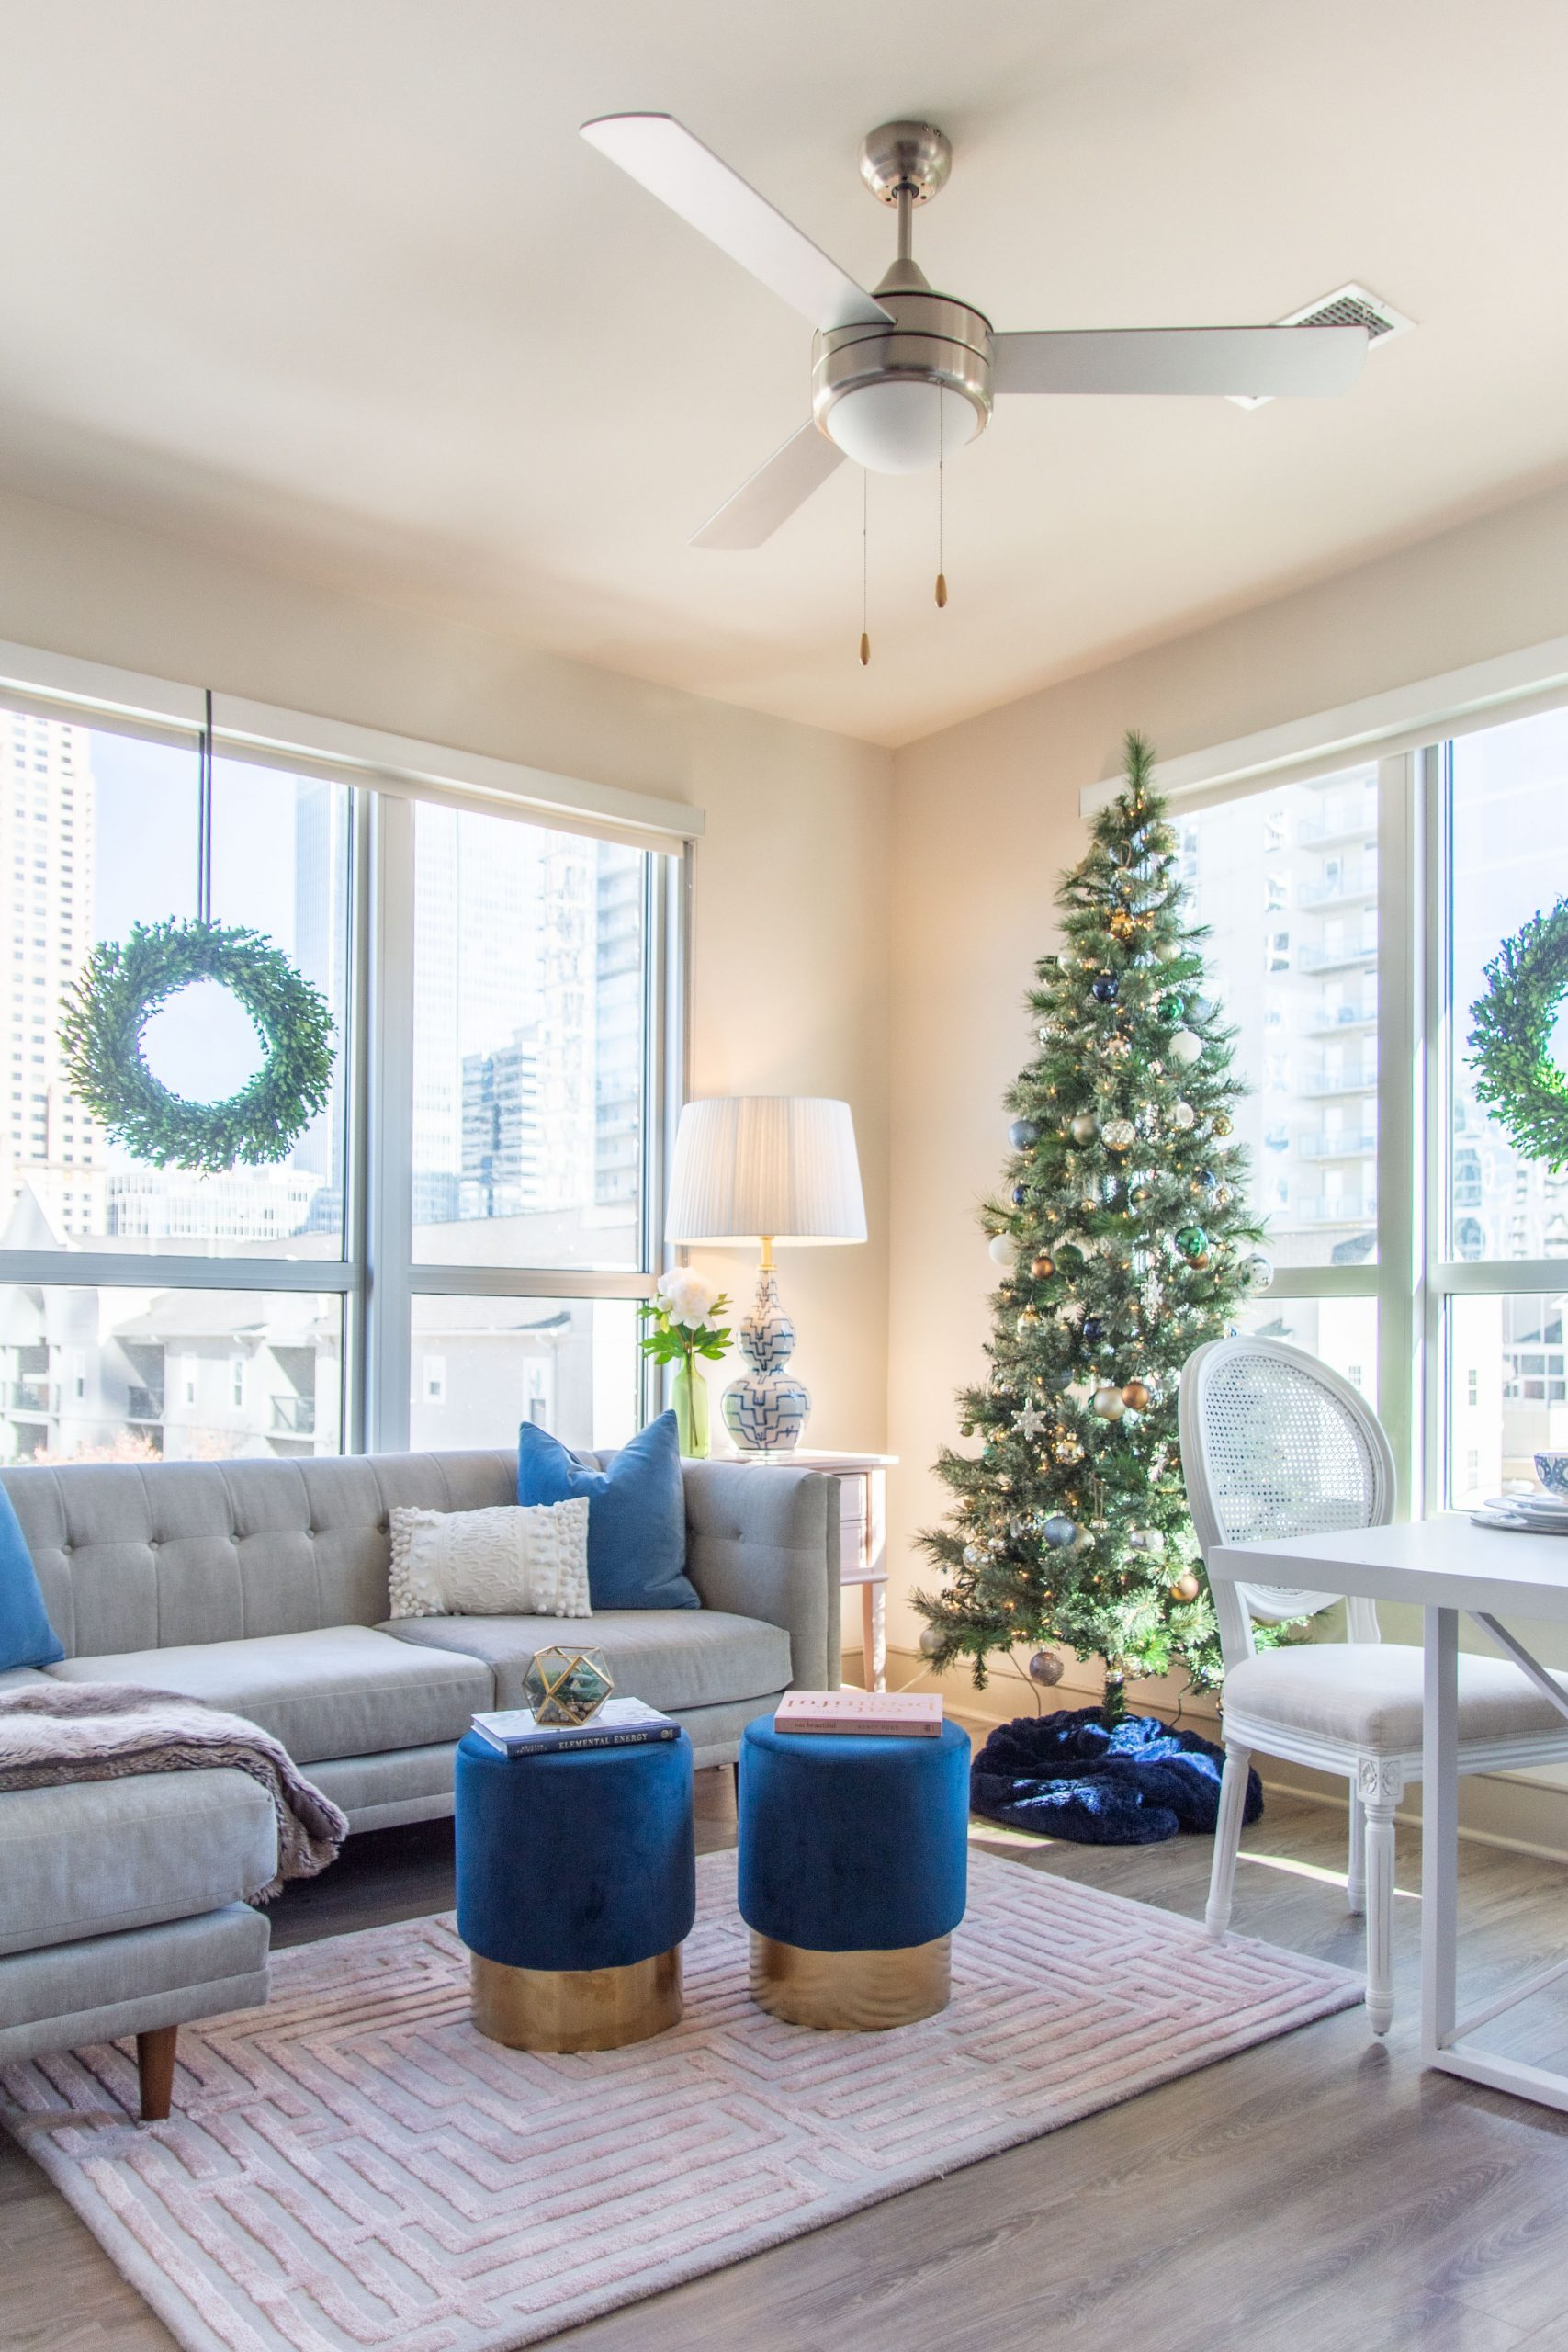 Apartment living room Christmas tree holiday decor with pink and blue, maze rug, velvet stools, and tan sectional by Kevin O'Gara on Thou Swell #apartmentstyle #apartmentdesign #apartmentdecor #livingroom #livingroomdesign #livingroomdecor #christmastree #holidaydecor #christmastyle #homedecorideas